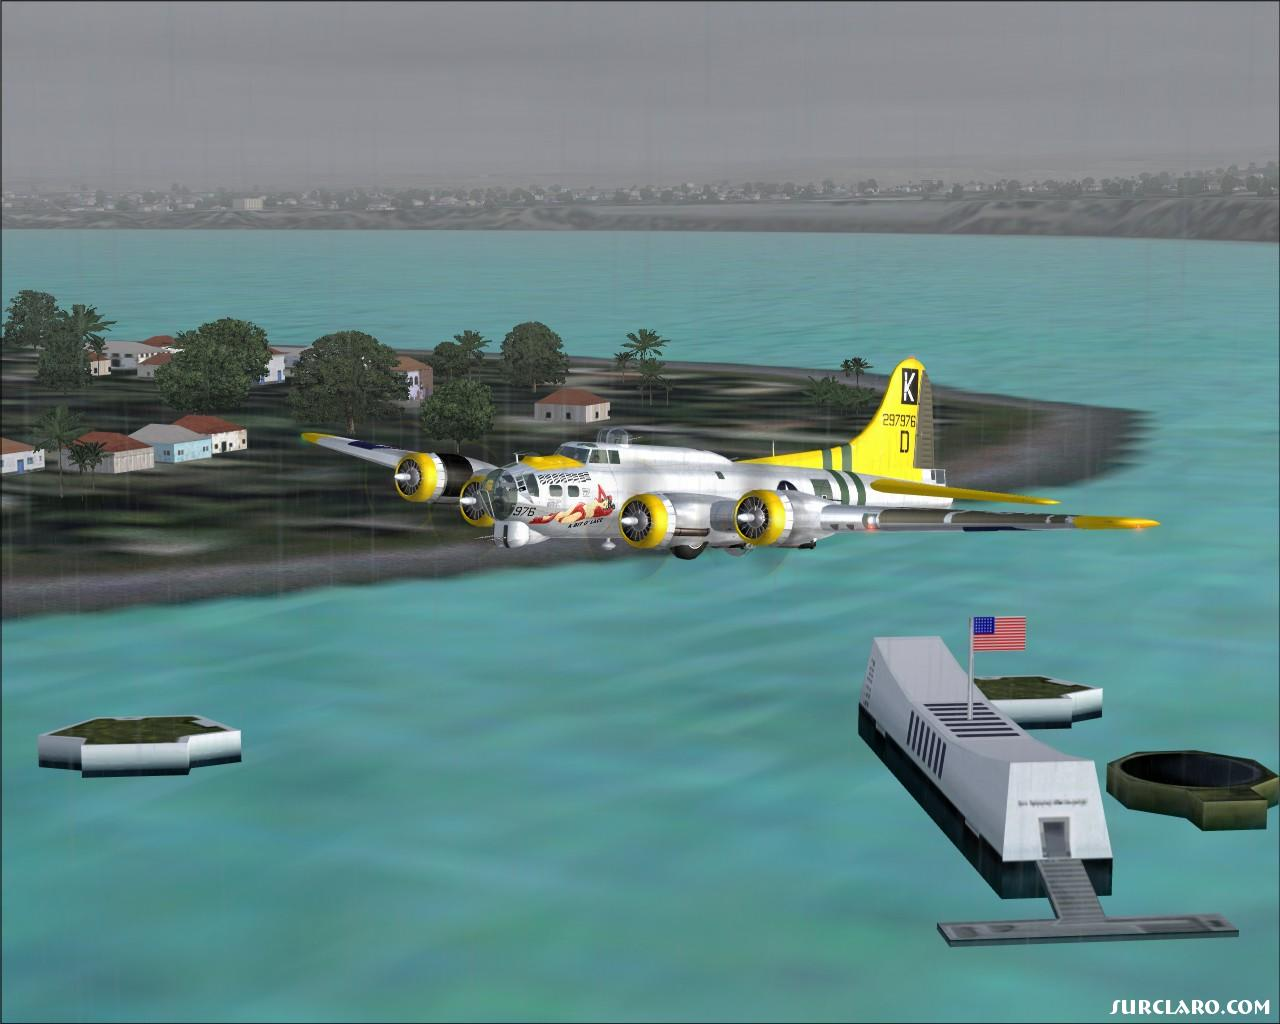 Saluting the fallen hero's of the USS Arizona in my B-17! - Photo 13786